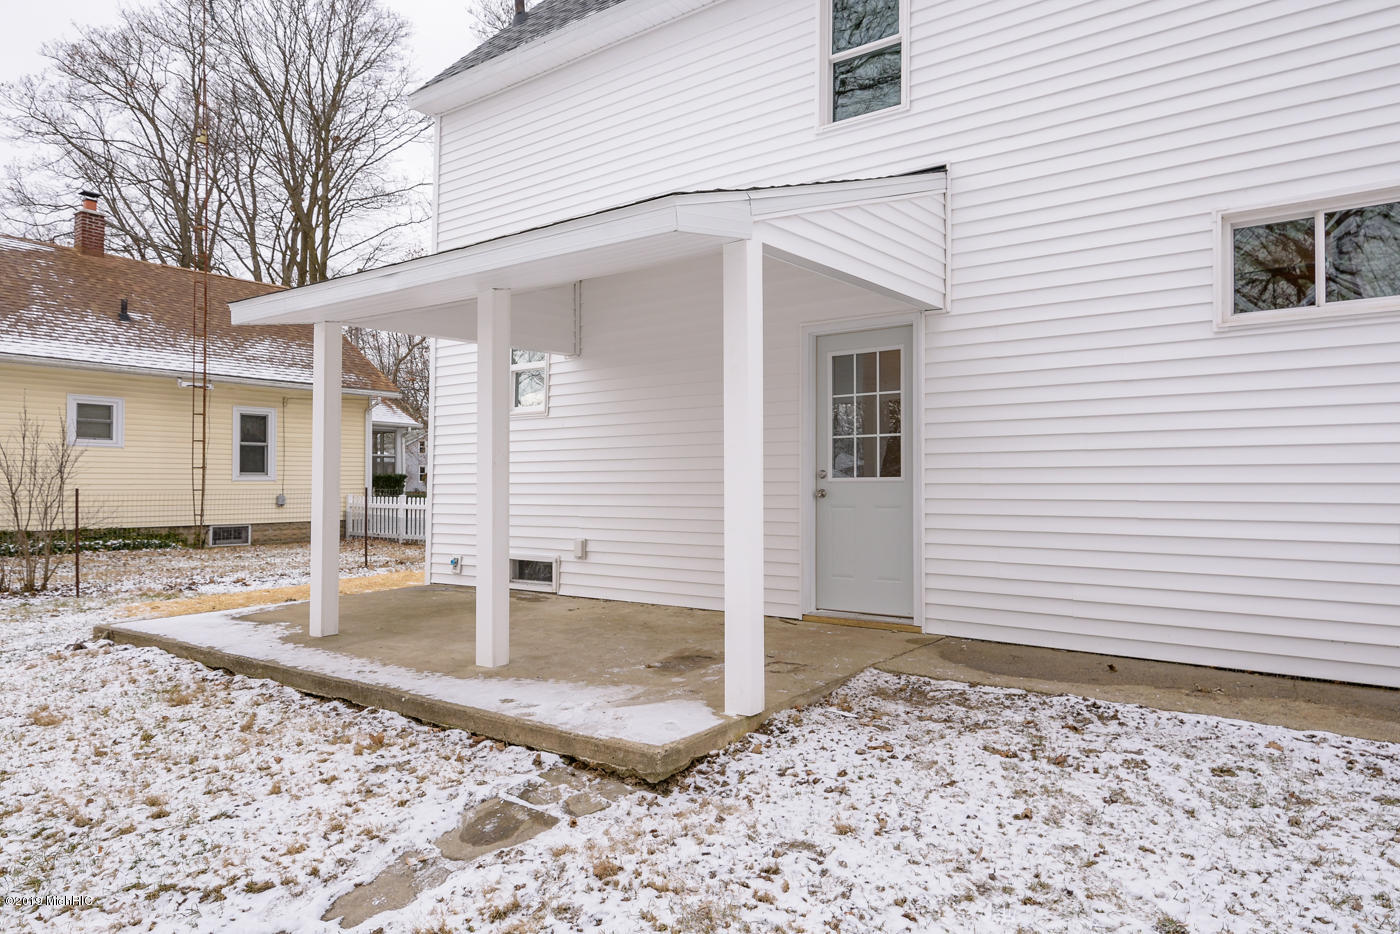 707 Hanover Street, Marshall, Michigan 49068, 3 Bedrooms Bedrooms, ,2 BathroomsBathrooms,Residential,For Sale,Hanover,19001440